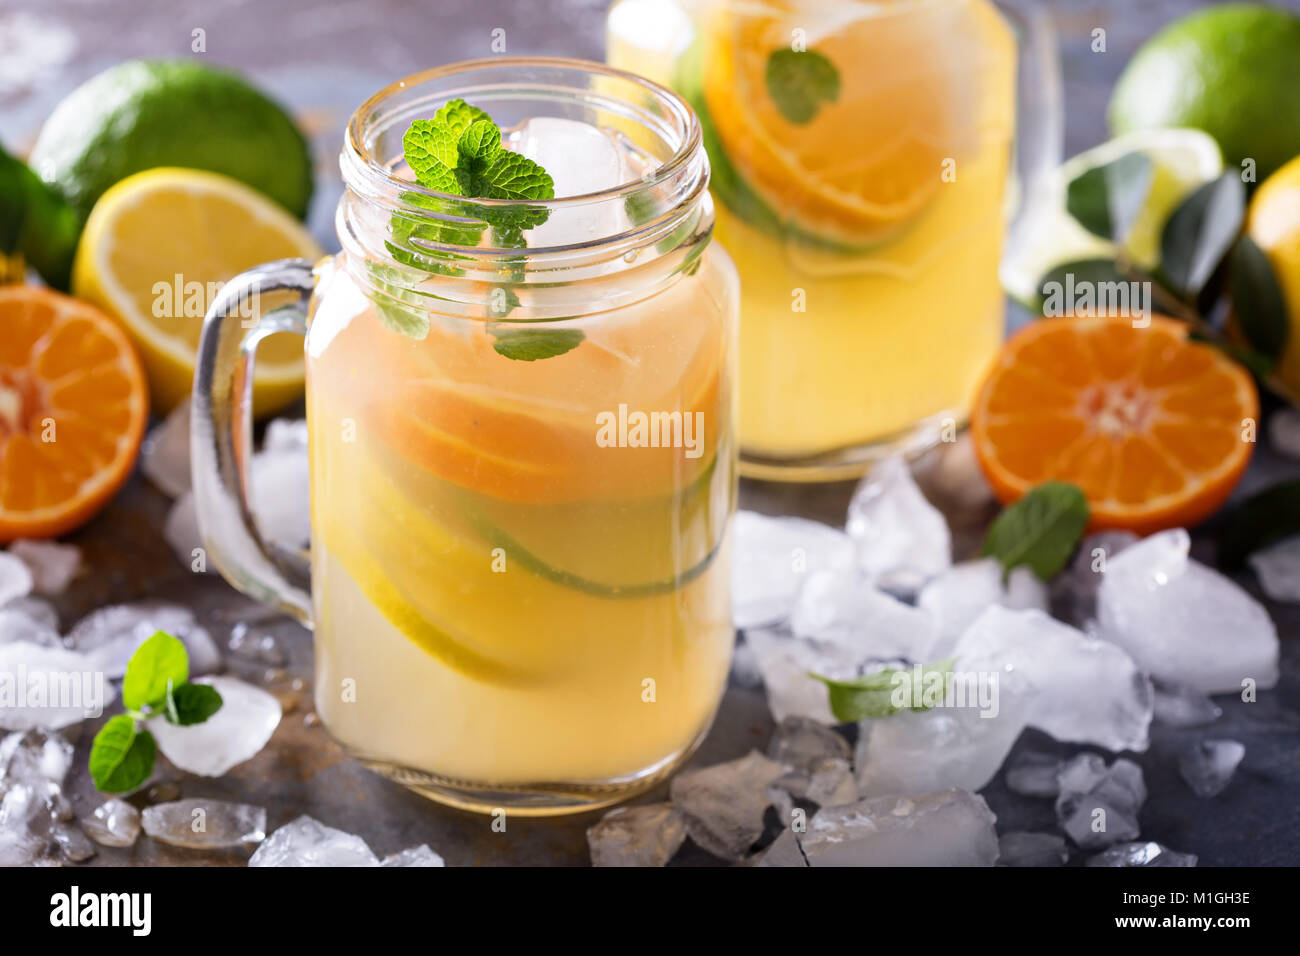 Citrus lemonade with slices of oranges, lemons and limes in mason jars - Stock Image